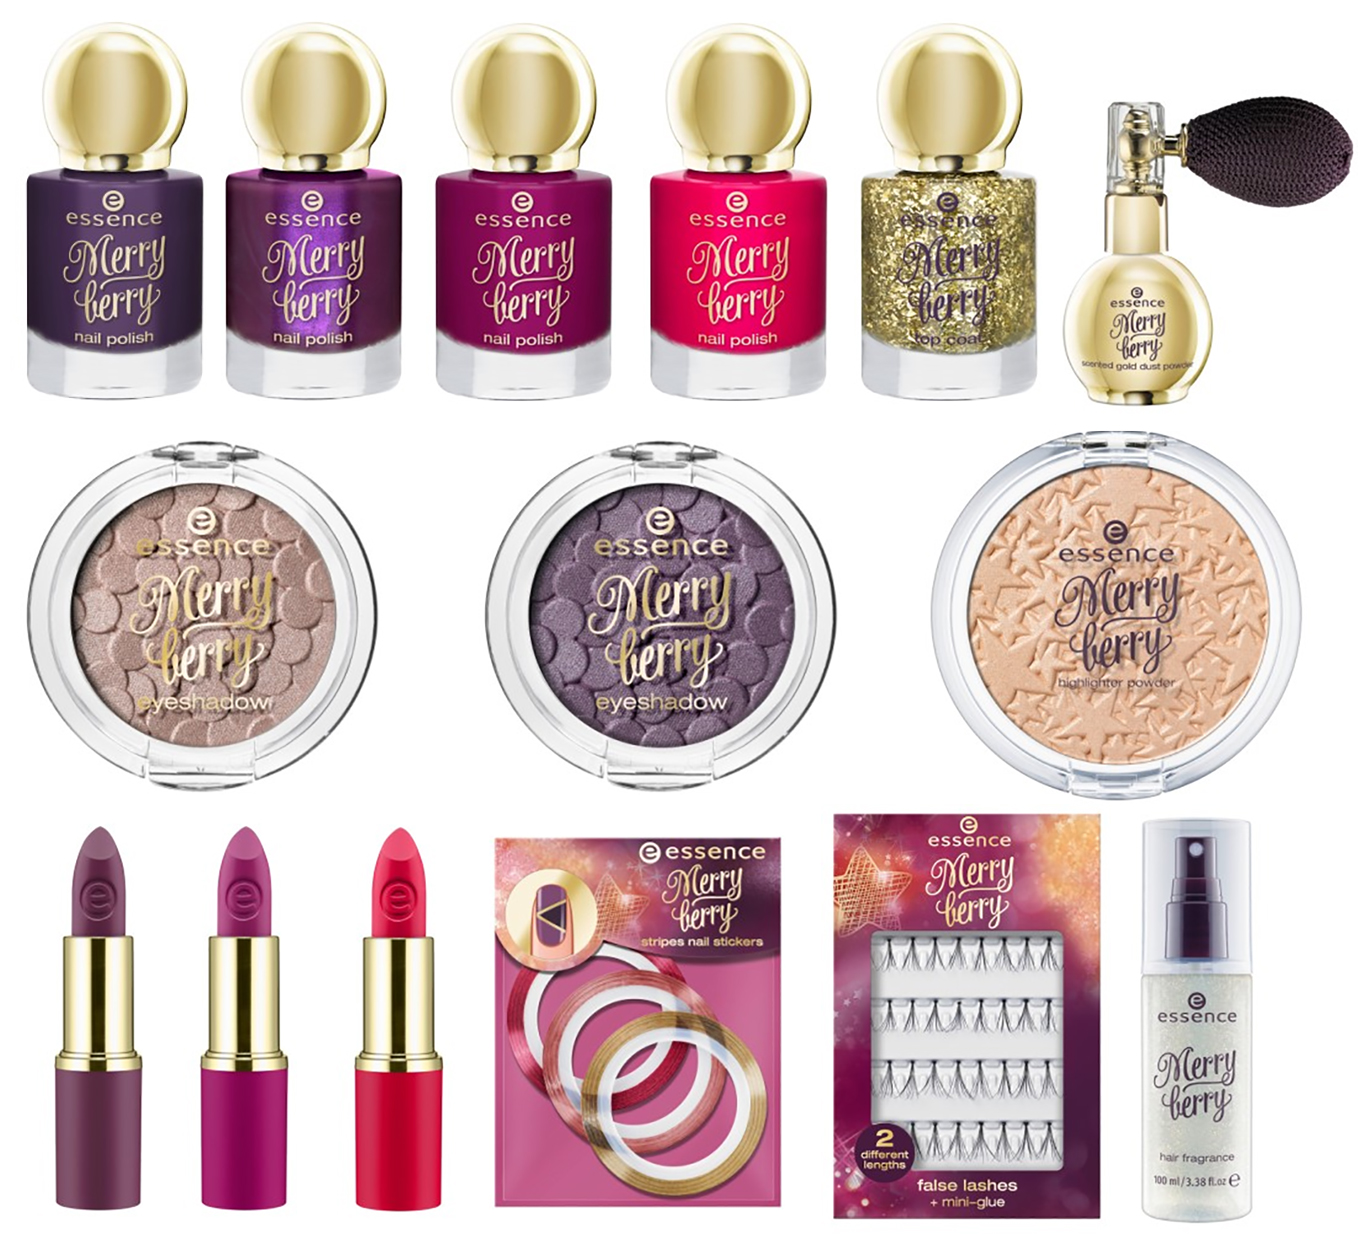 essence-merry-berry-le Preview - essence merry berry Limited Edition